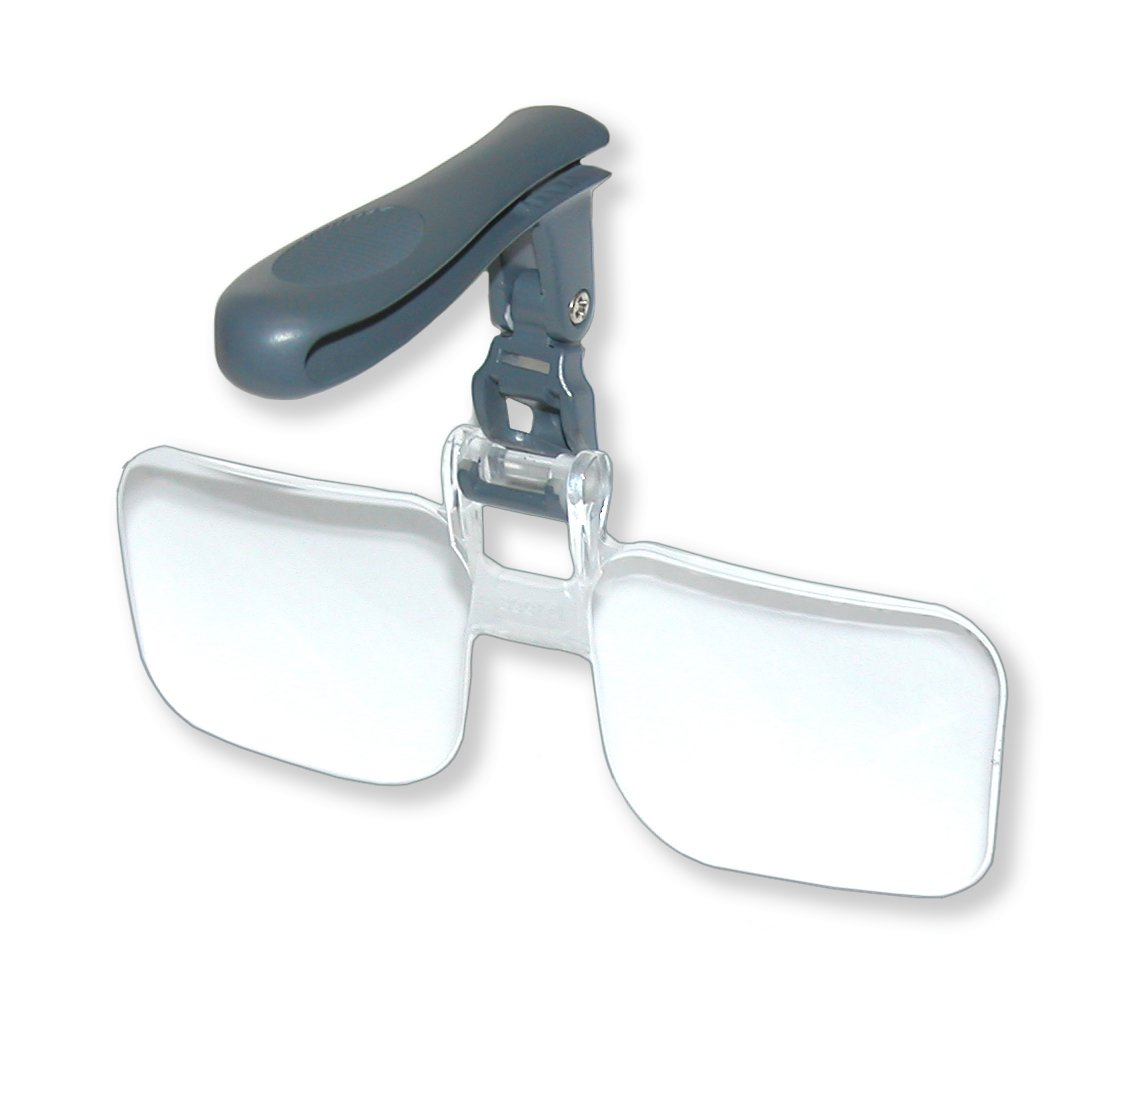 Carson Optical VisorMag 1.75x Power (+3.00 Diopters) Clip-On Magnifying Lens for Hats VM-10 by Carson (Image #1)